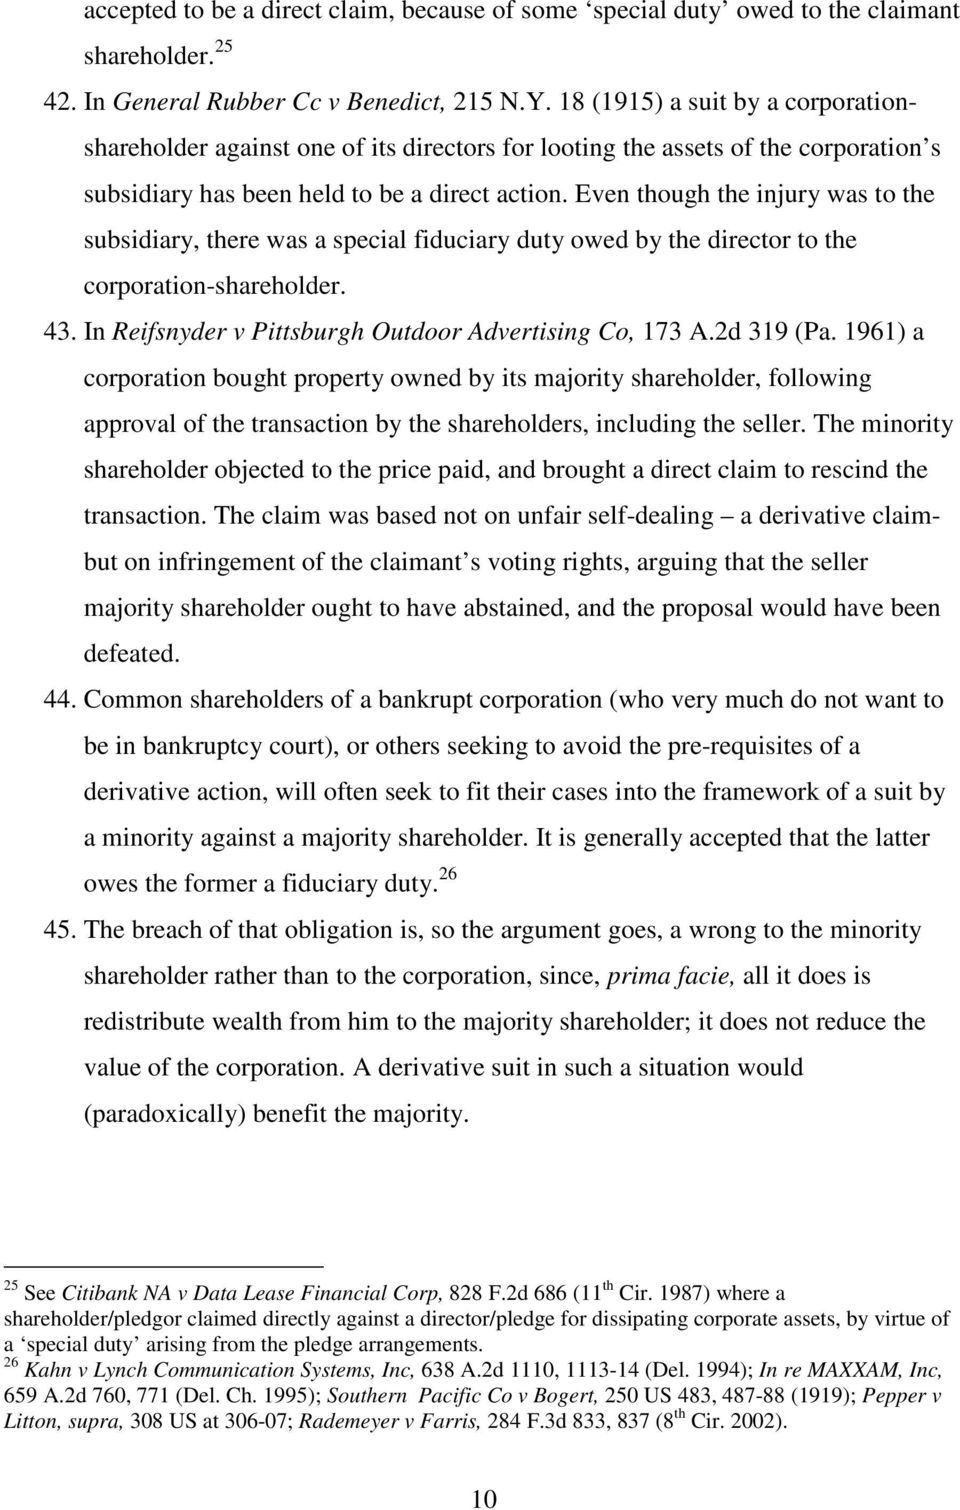 Even though the injury was to the subsidiary, there was a special fiduciary duty owed by the director to the corporation-shareholder. 43. In Reifsnyder v Pittsburgh Outdoor Advertising Co, 173 A.